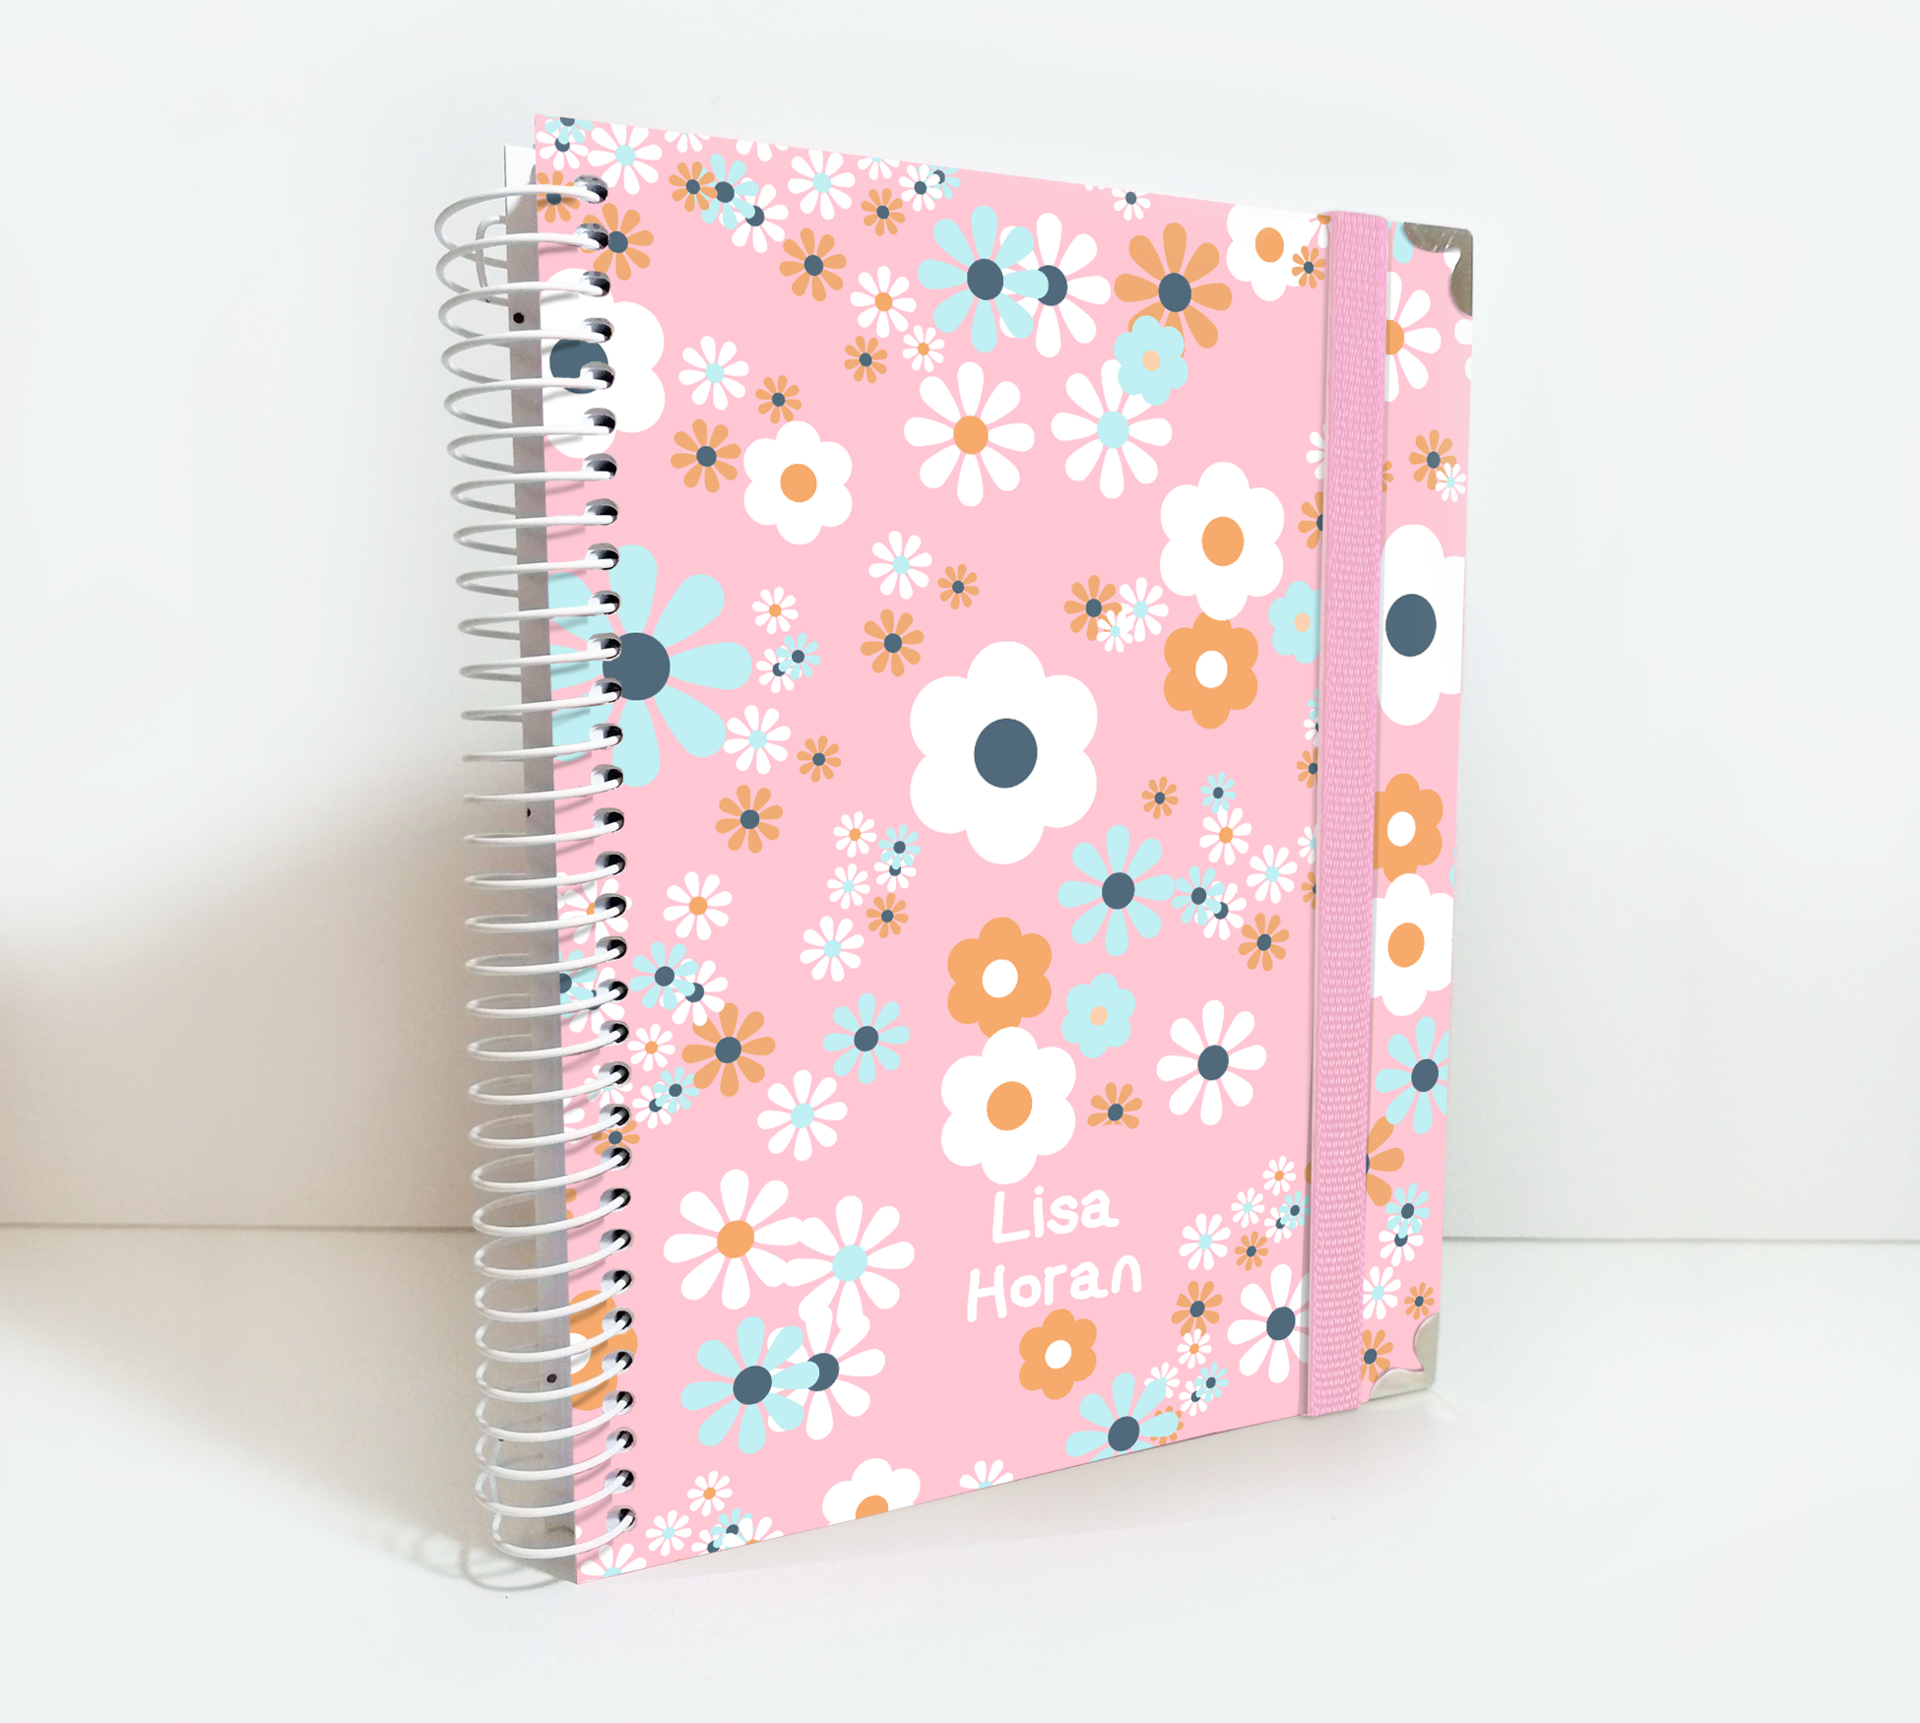 Personalized 2020/21 Weekly Planner Pink Cover with Lovely Daisies Flowers